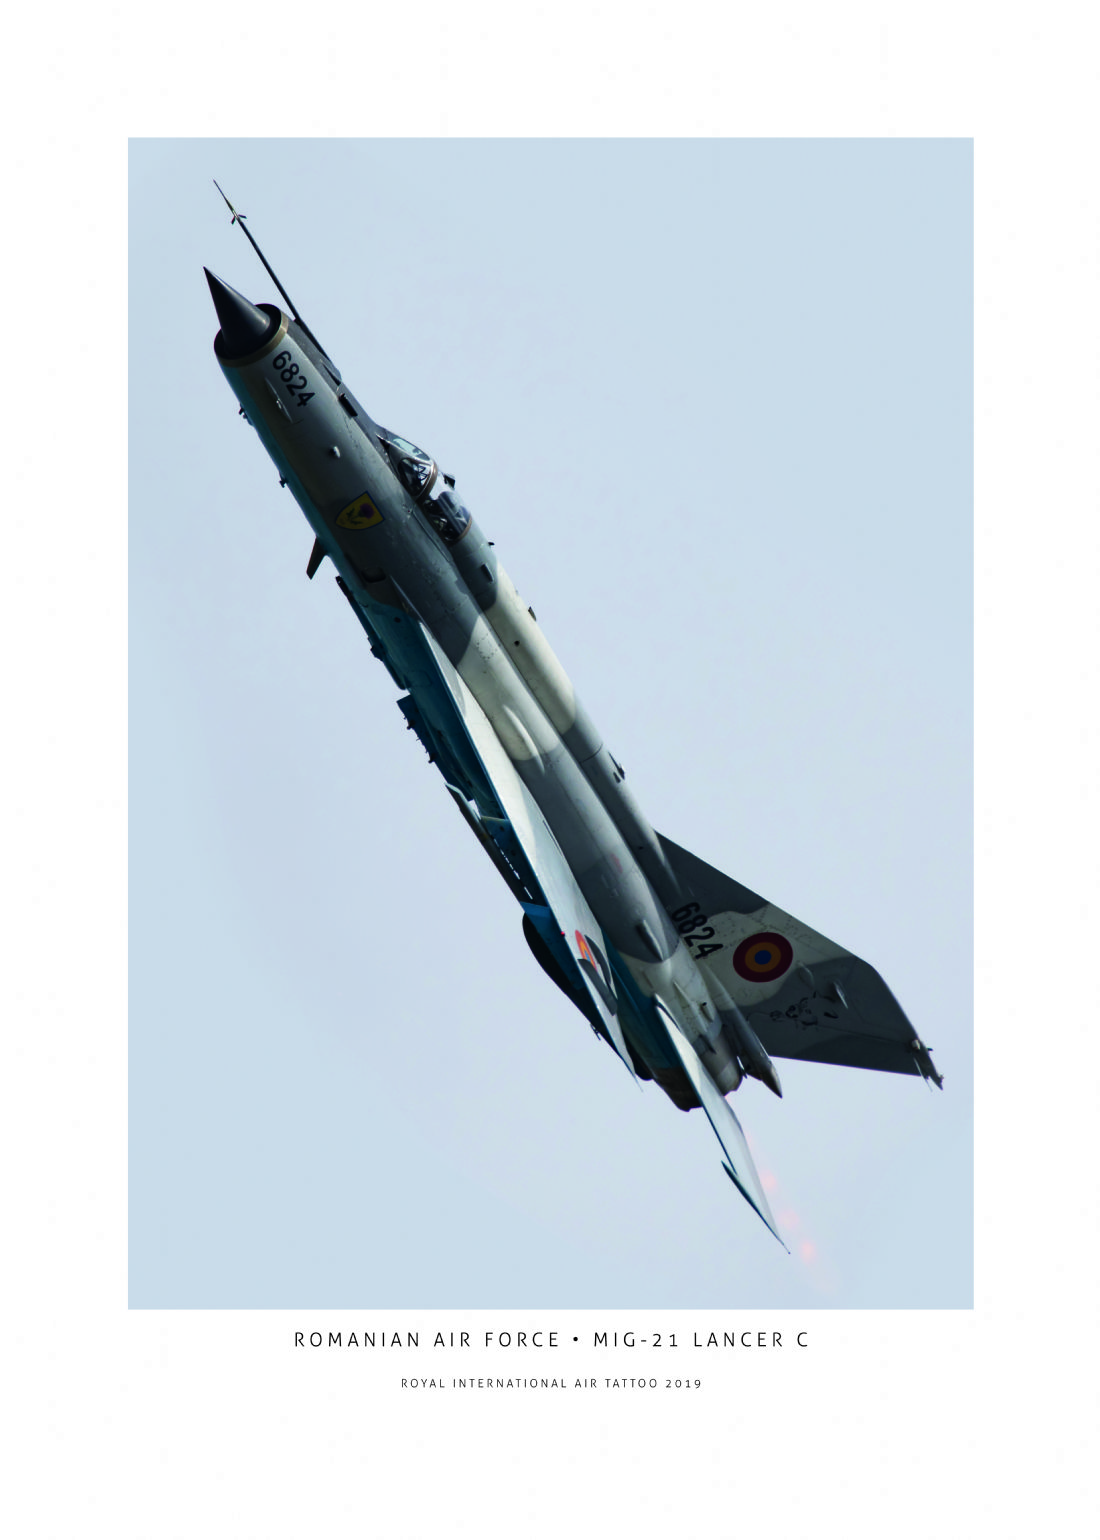 Airpower Art | Romanian Air Force MiG-21 LanceR C